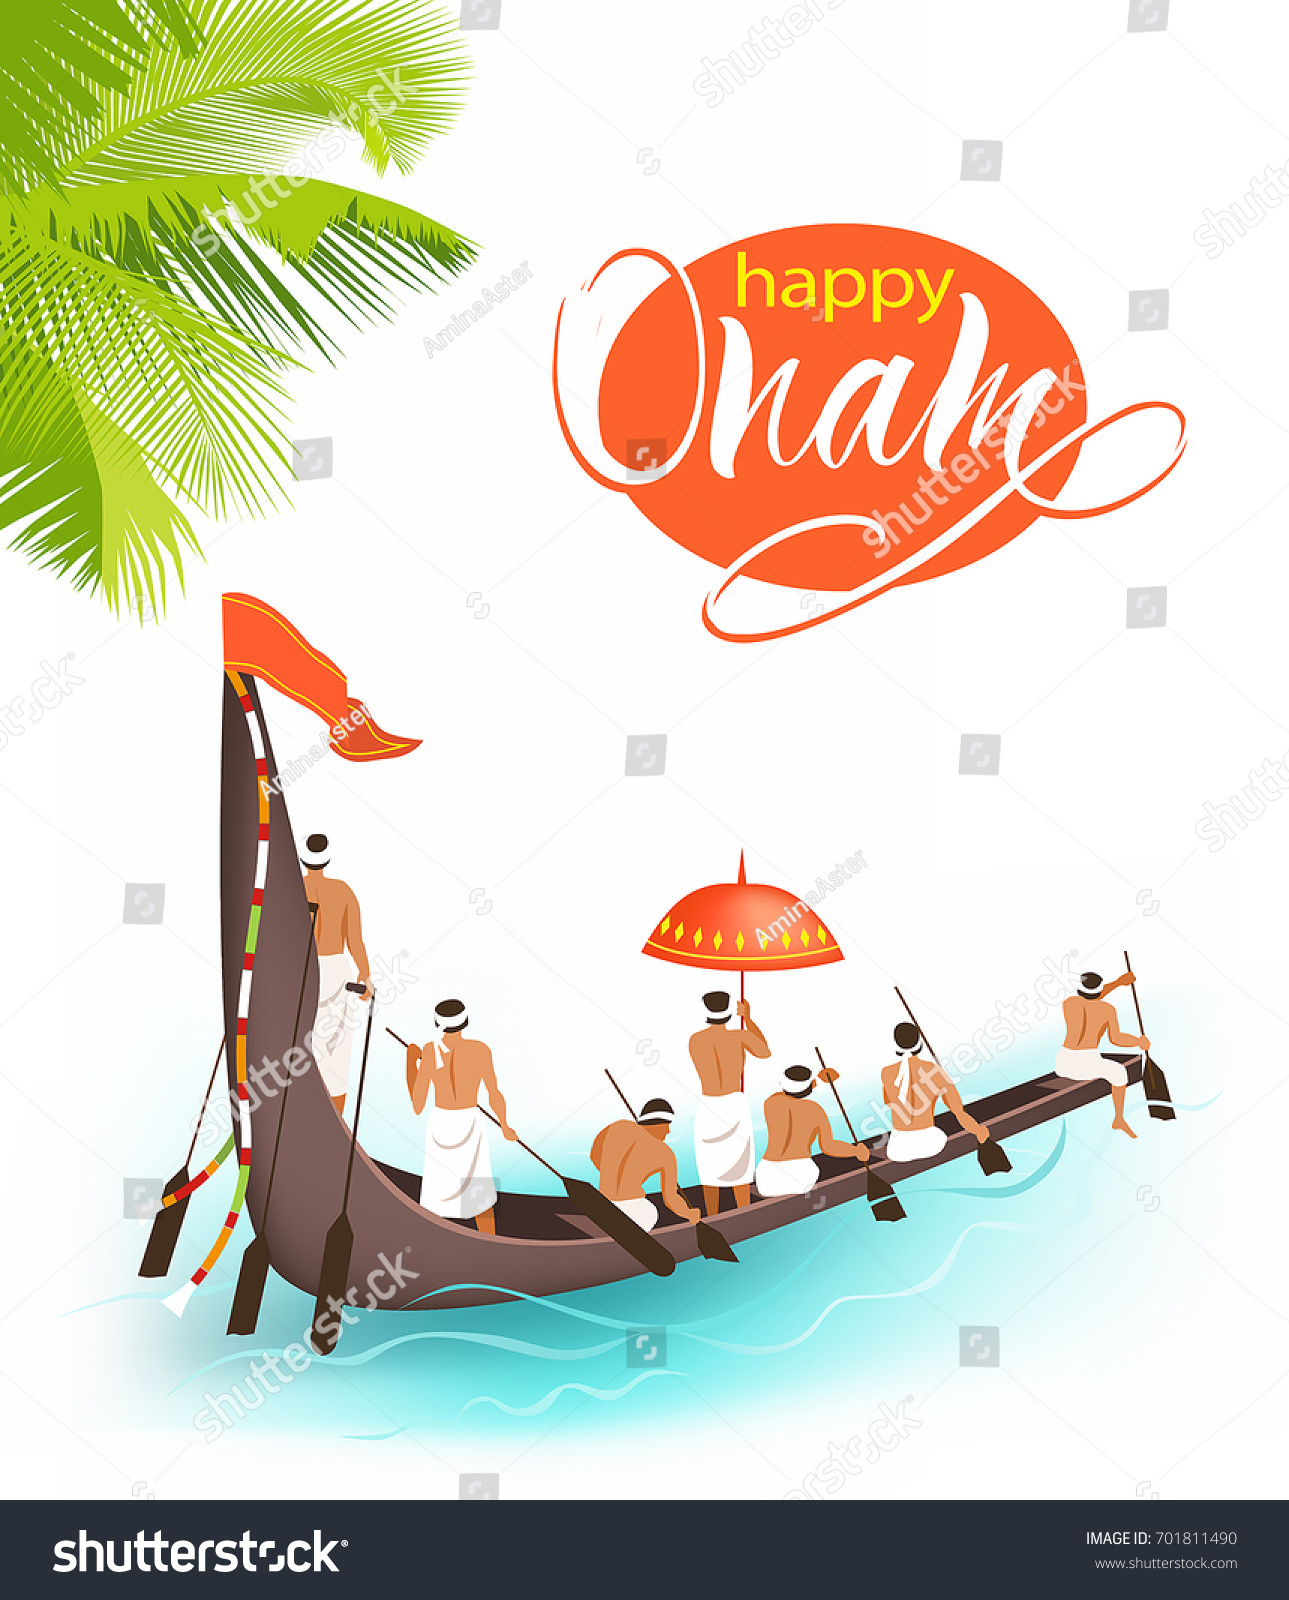 Greeting Background Boat Race Vallamkali South Stock Vector